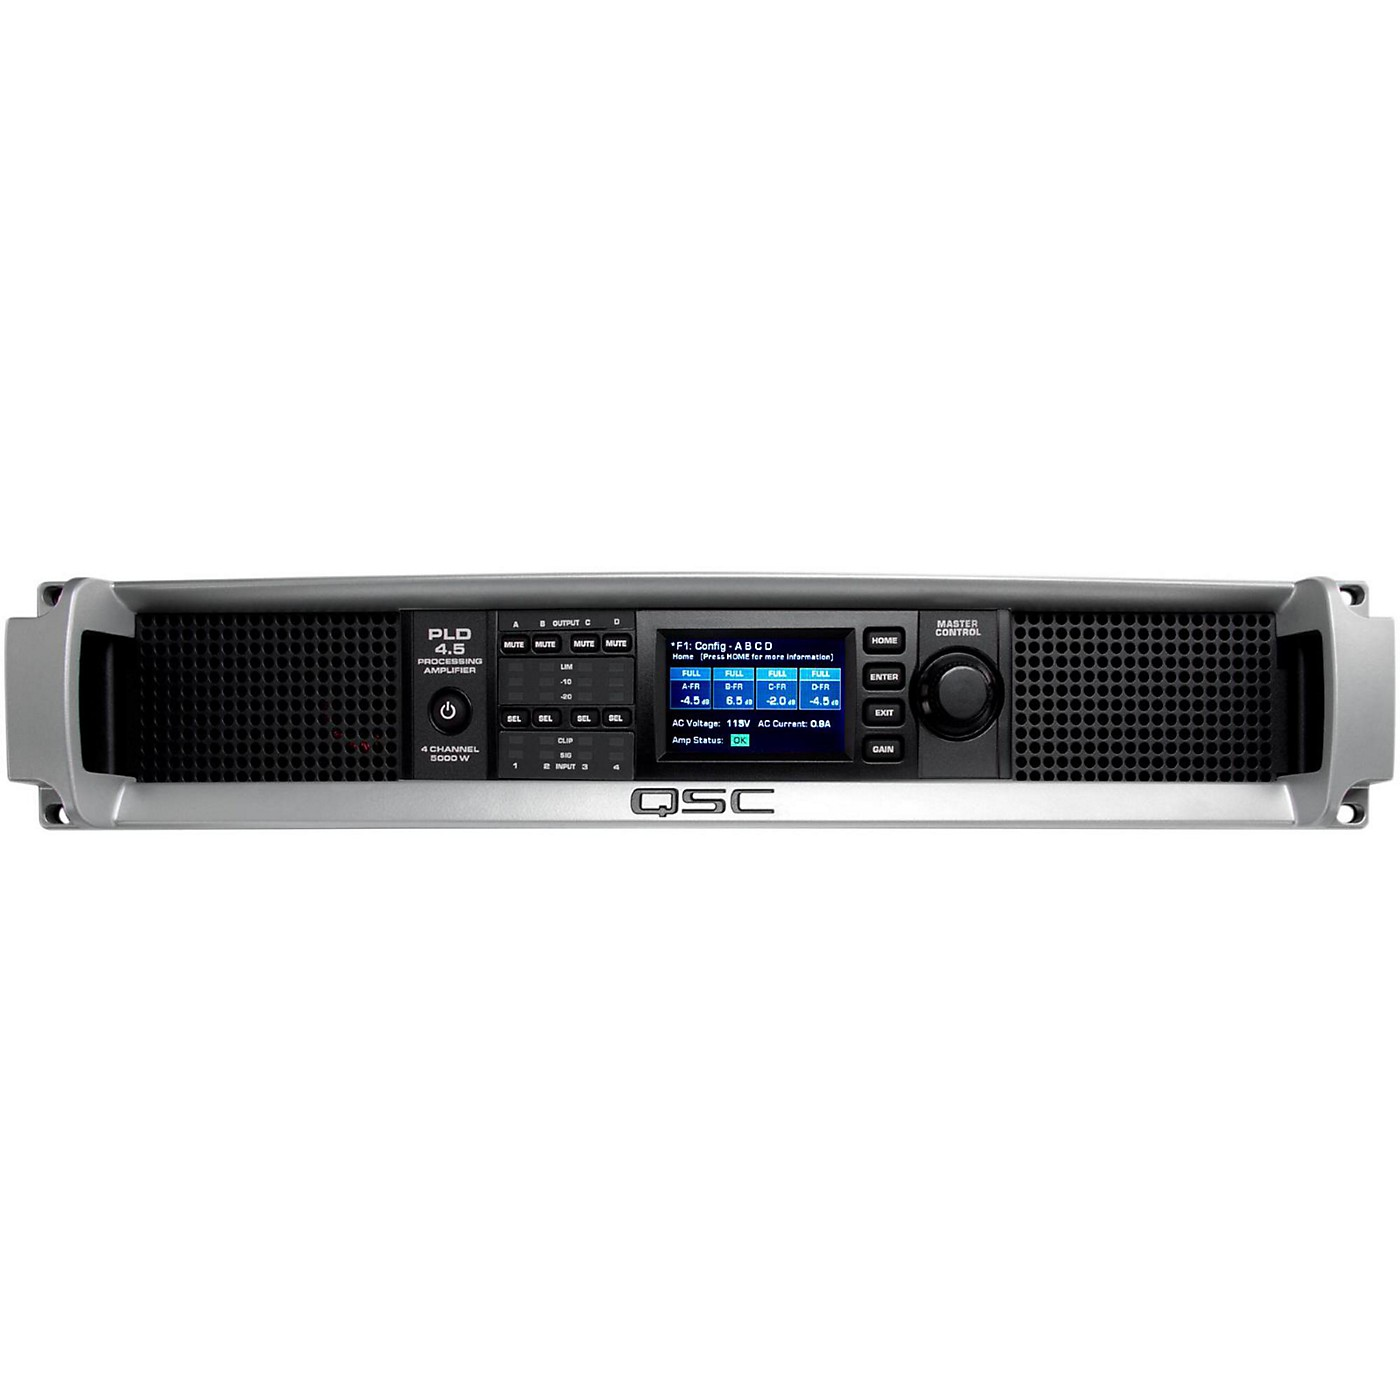 QSC PLD4.5 Multi-Channel System Processing Amplifier thumbnail